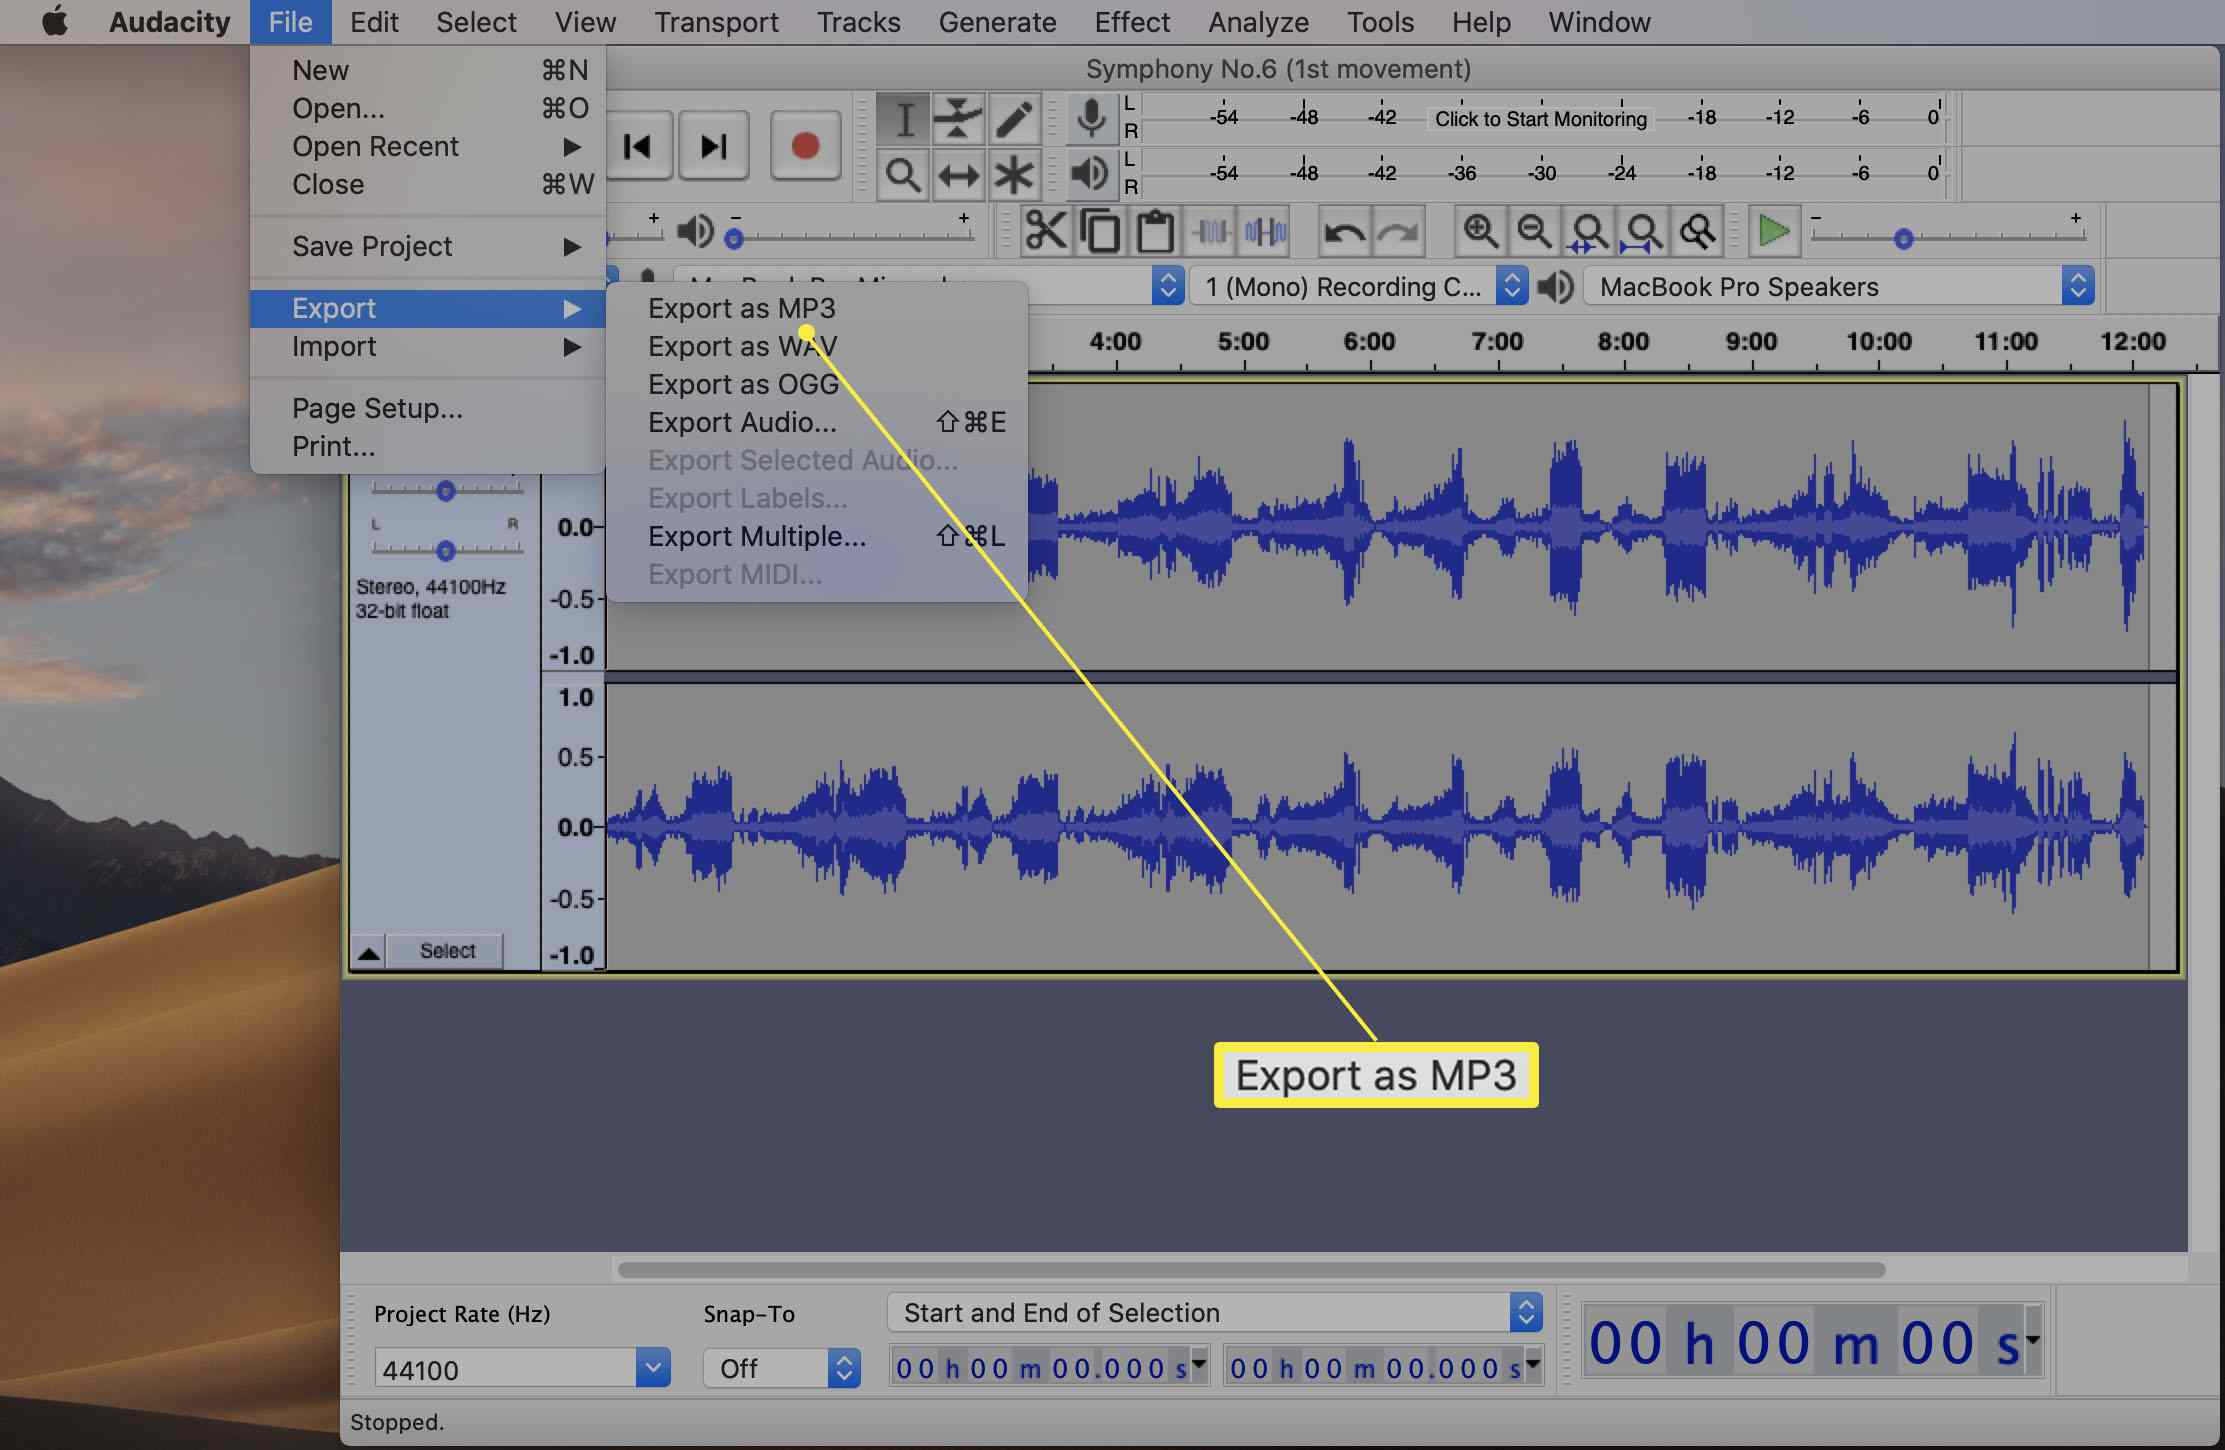 Audacity app with Export as MP3 highlighted